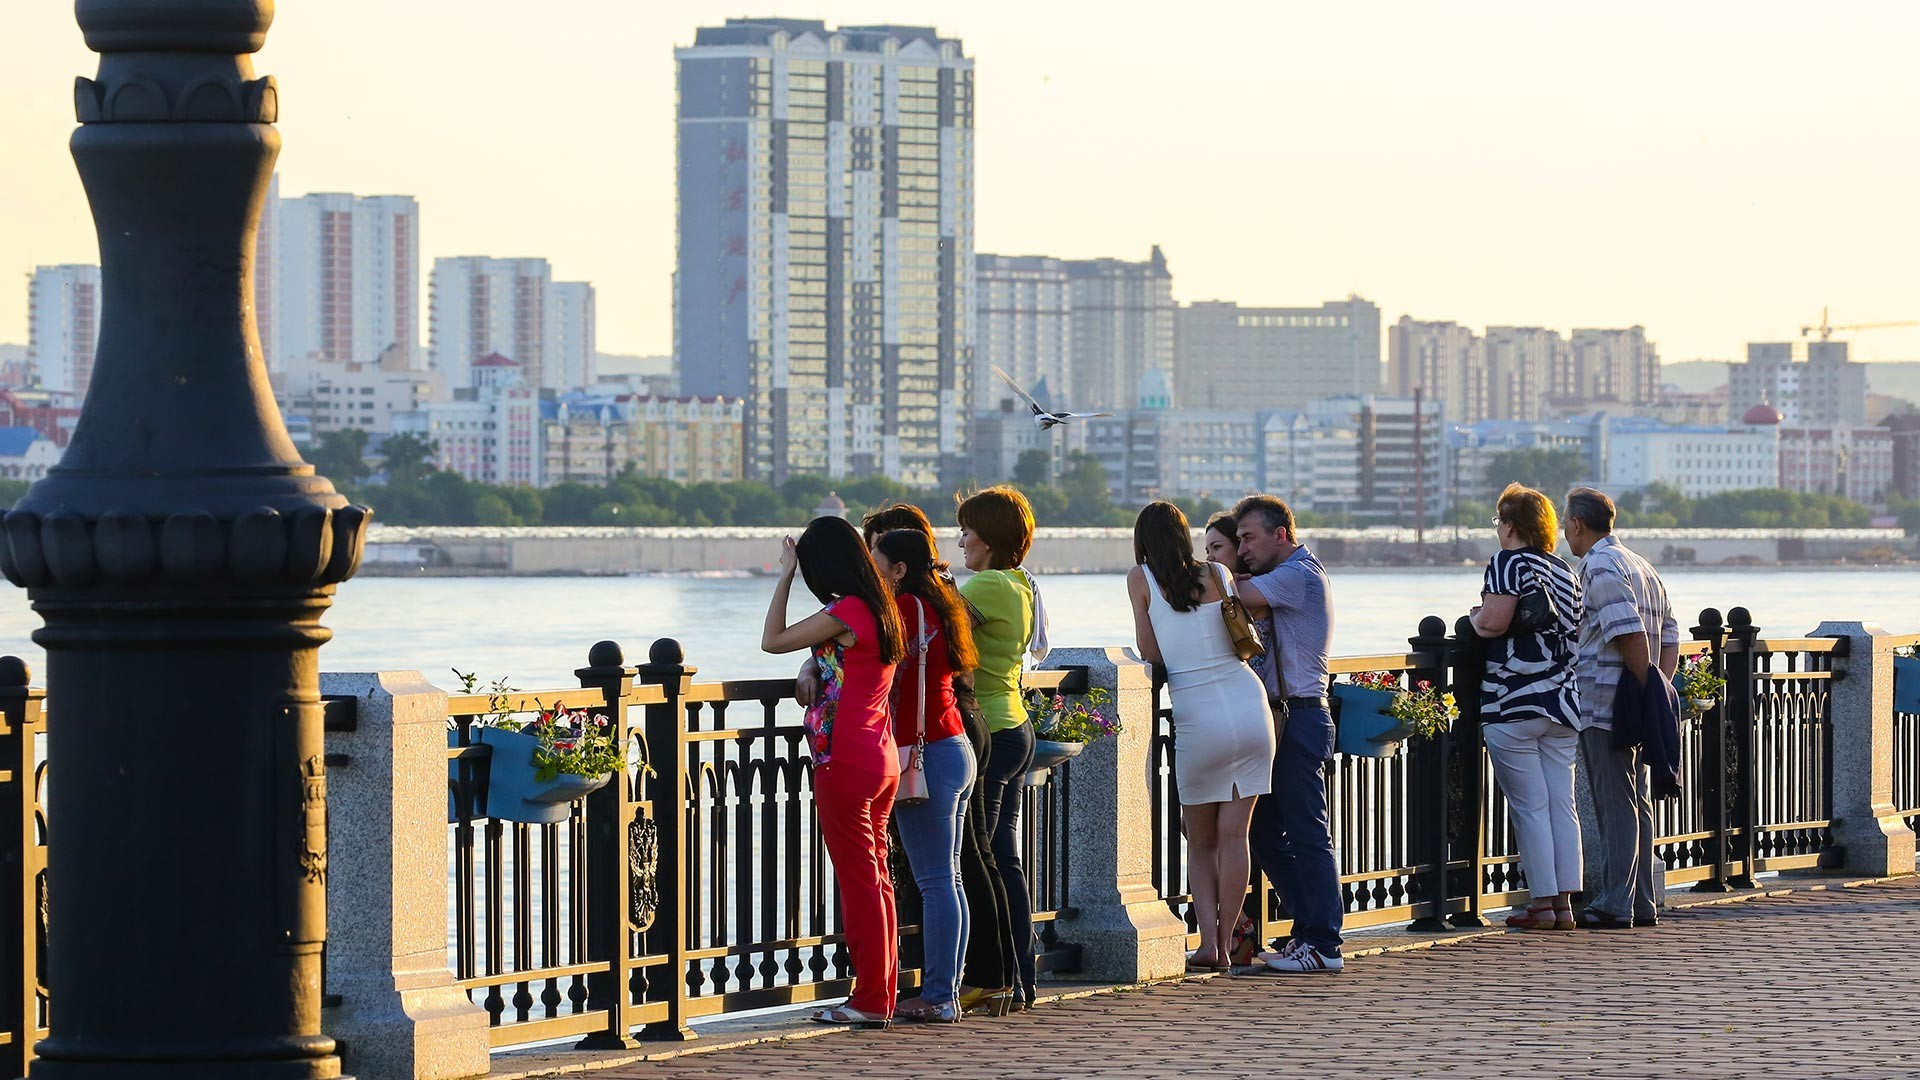 Blagoveshchensk. View of the Amur River embankment and the city of Heihe.